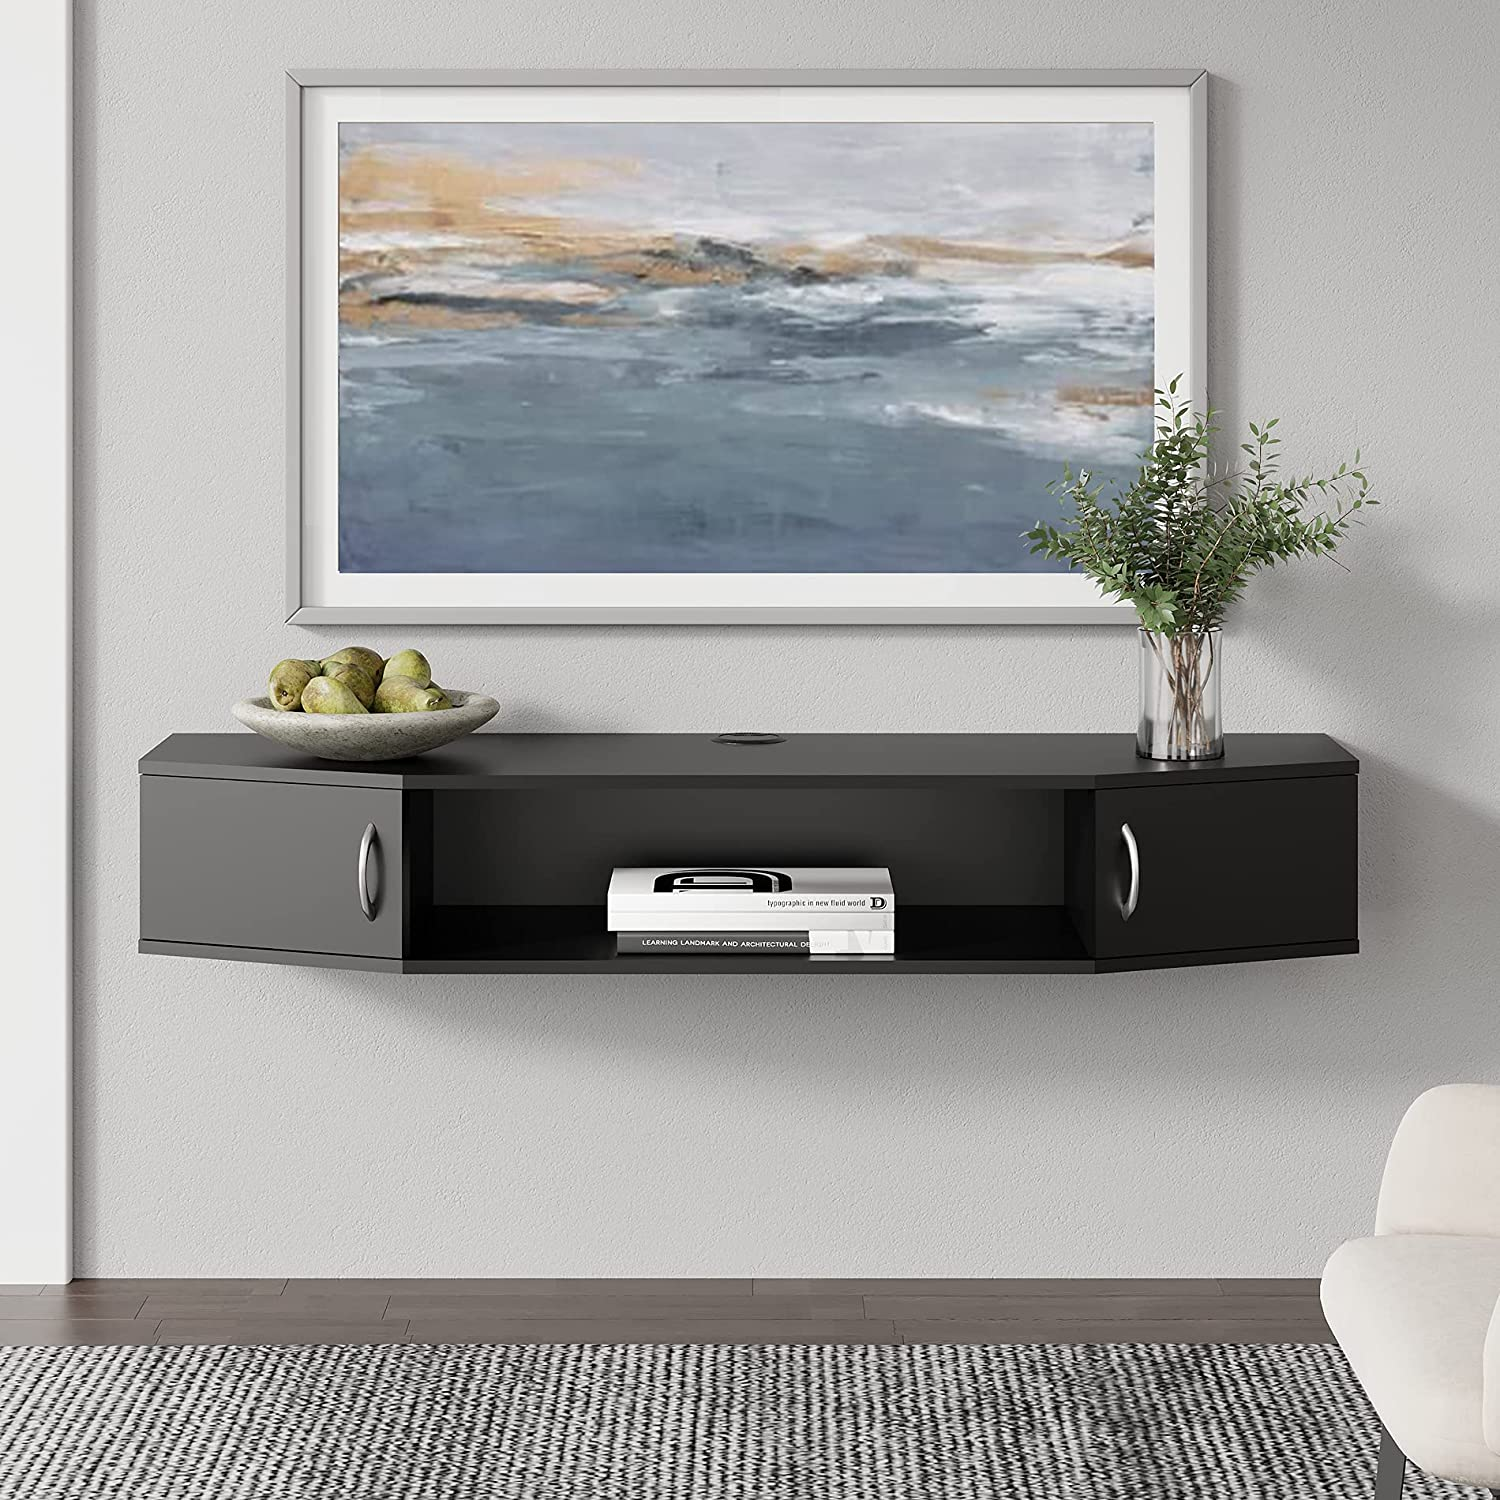 Floating Austin Mall TV Stand Wall Media Max 57% OFF Mounted Console Enterta